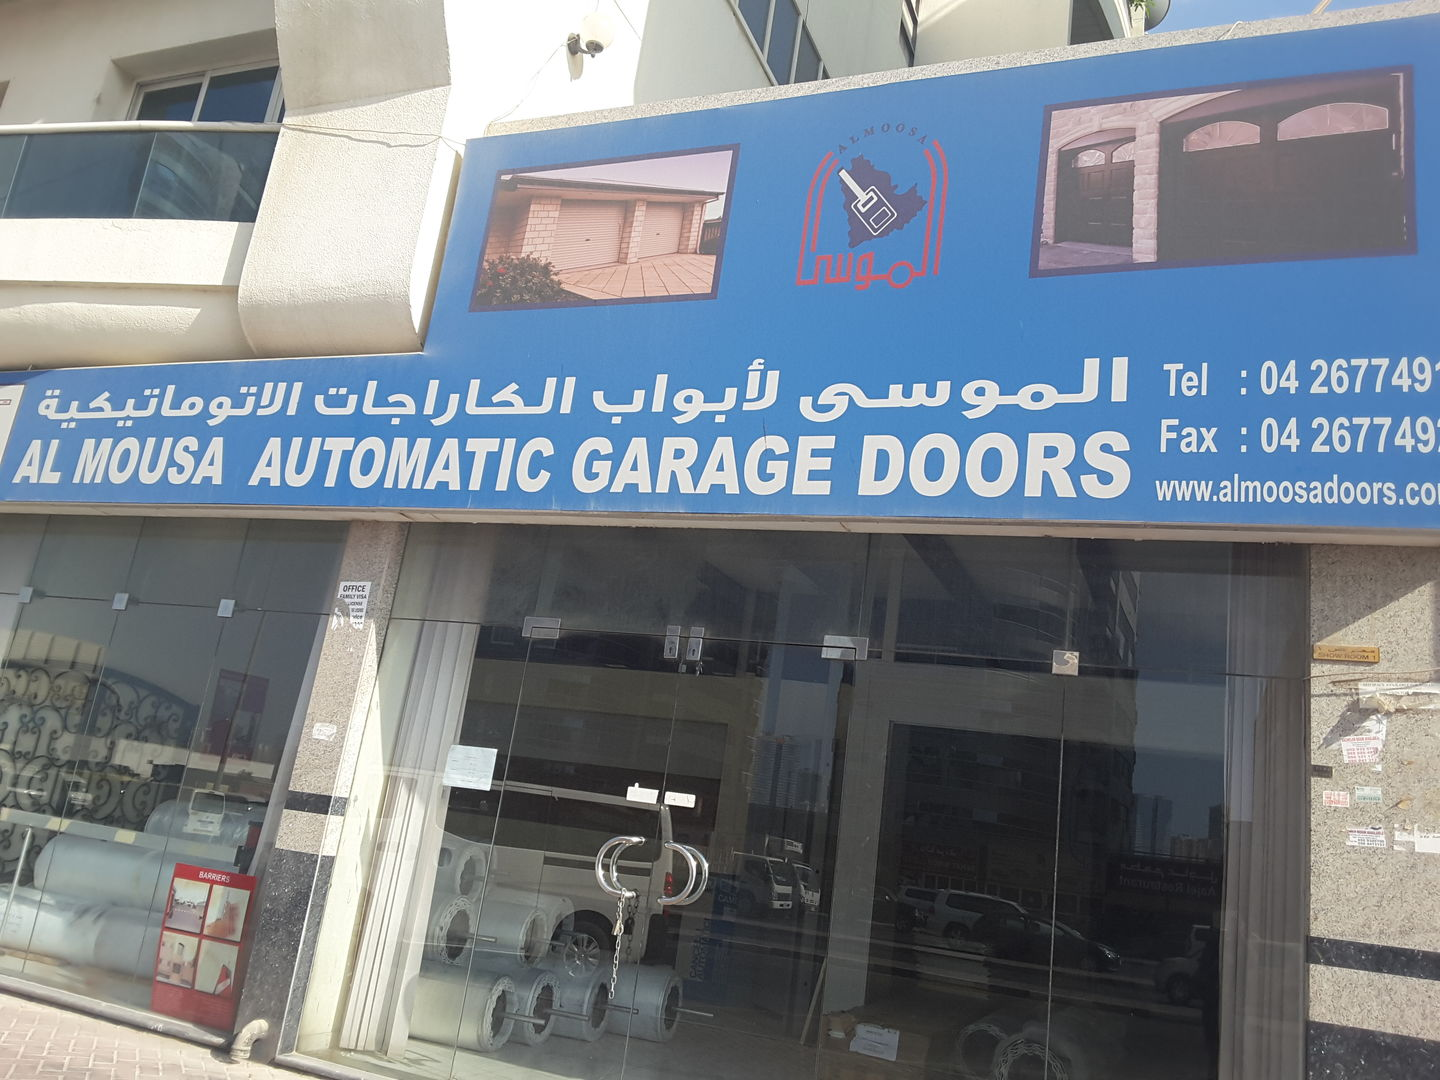 HiDubai-business-al-mousa-automatic-garage-doore-b2b-services-distributors-wholesalers-al-qusais-industrial-4-dubai-2